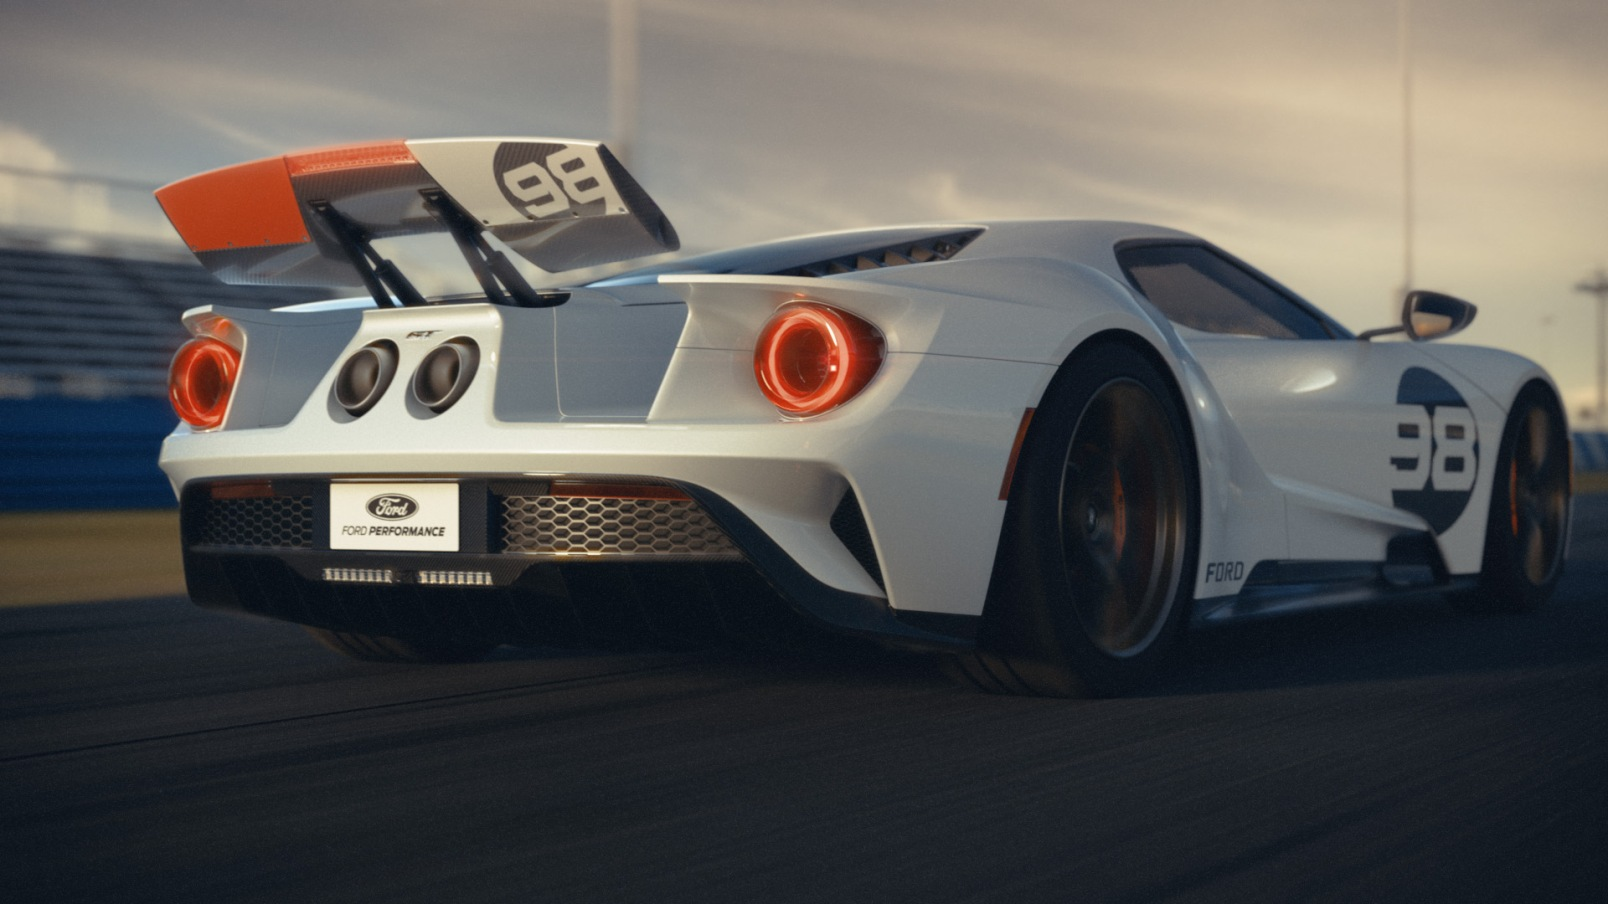 Ford Gt Heritage Edition 2021 (6)